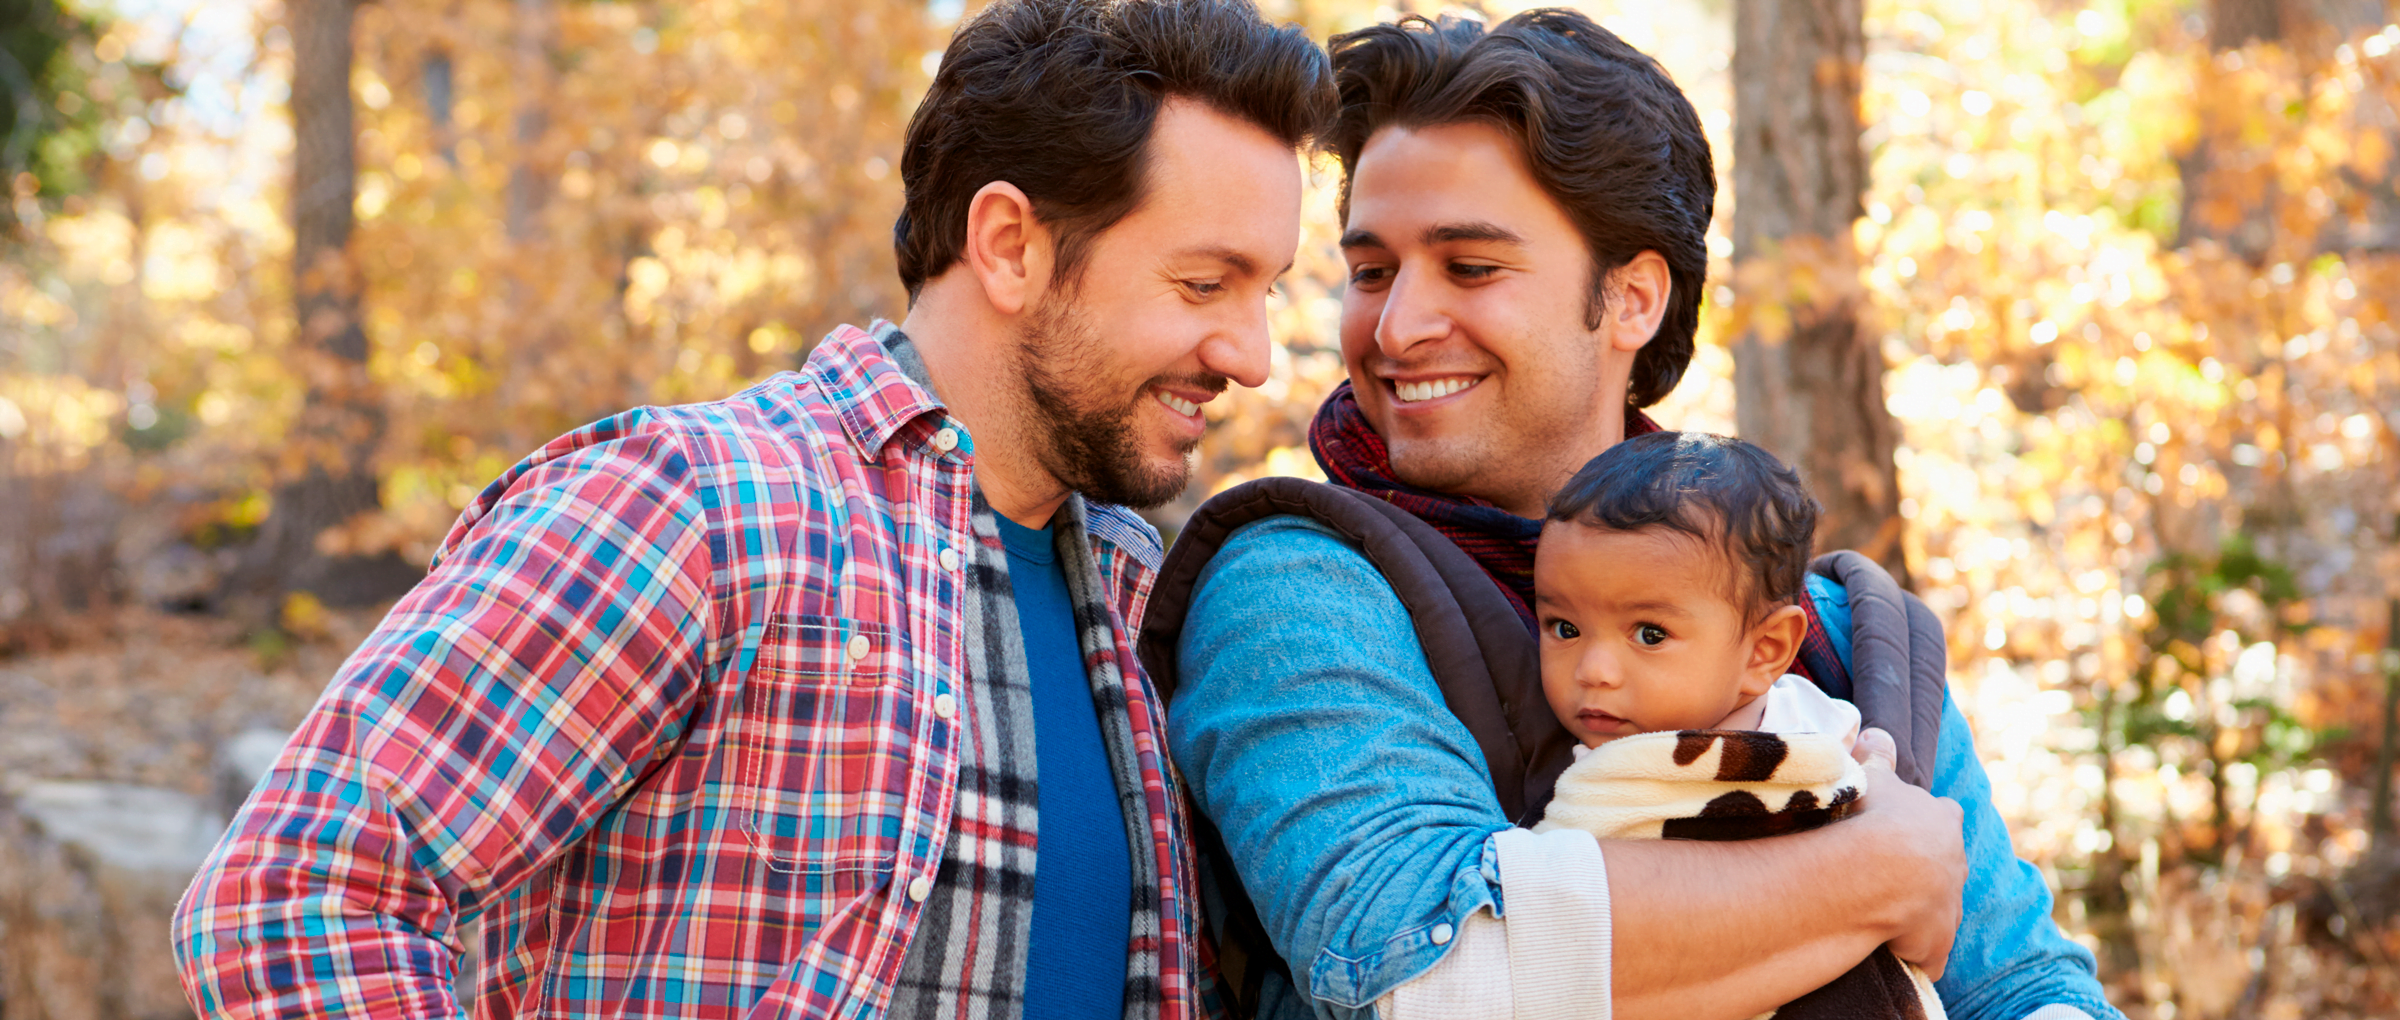 Adoption by Gay Couples